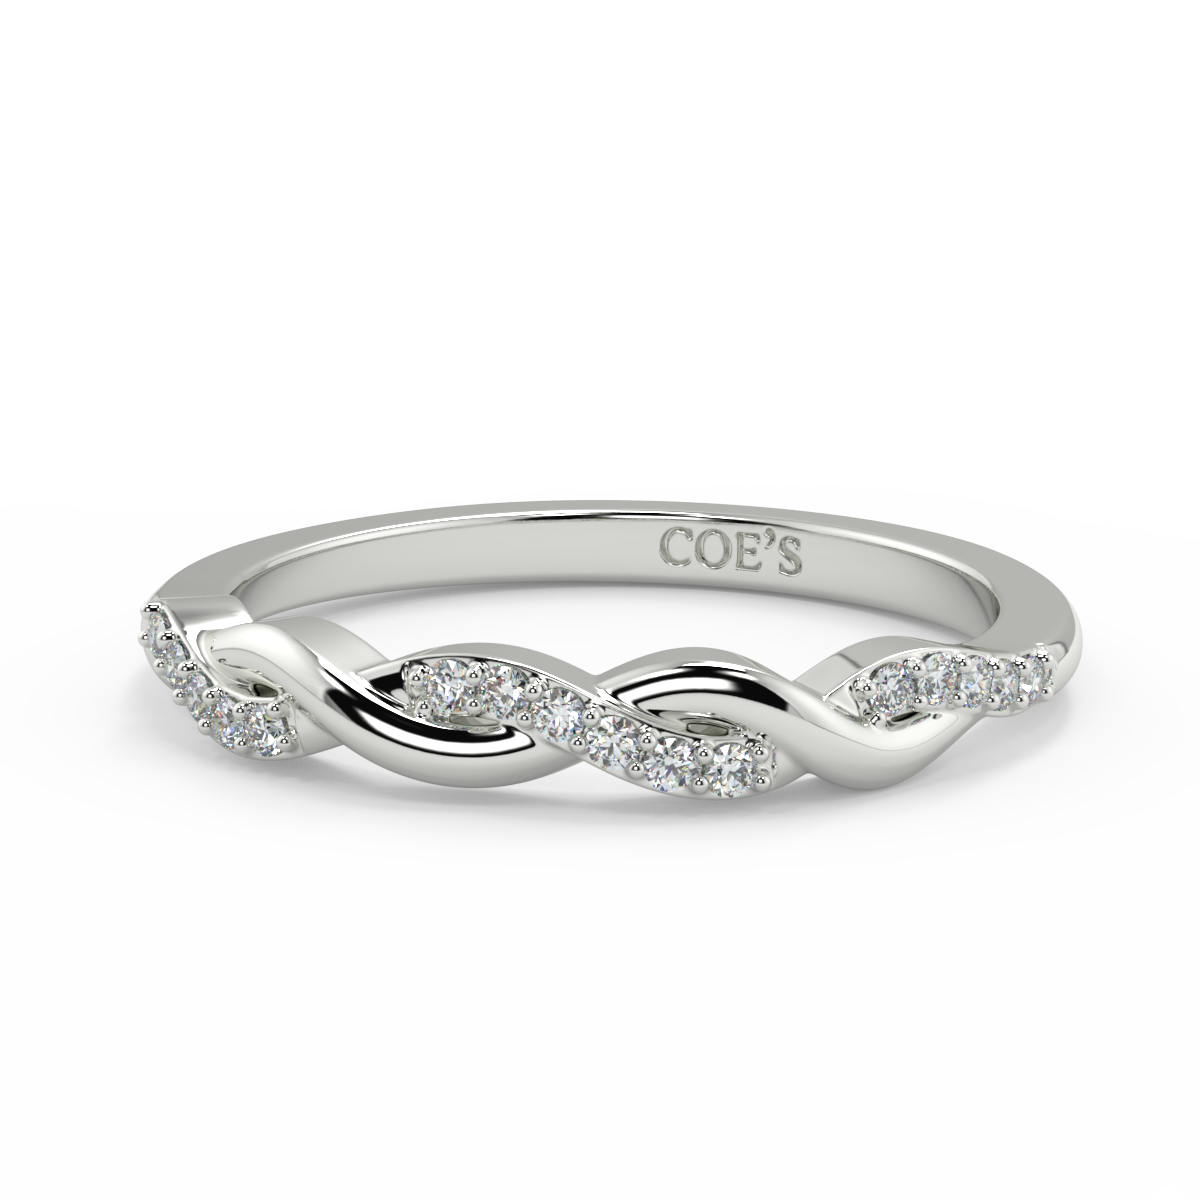 Blanche - Ladies Wedding / Eternity Diamond Ring